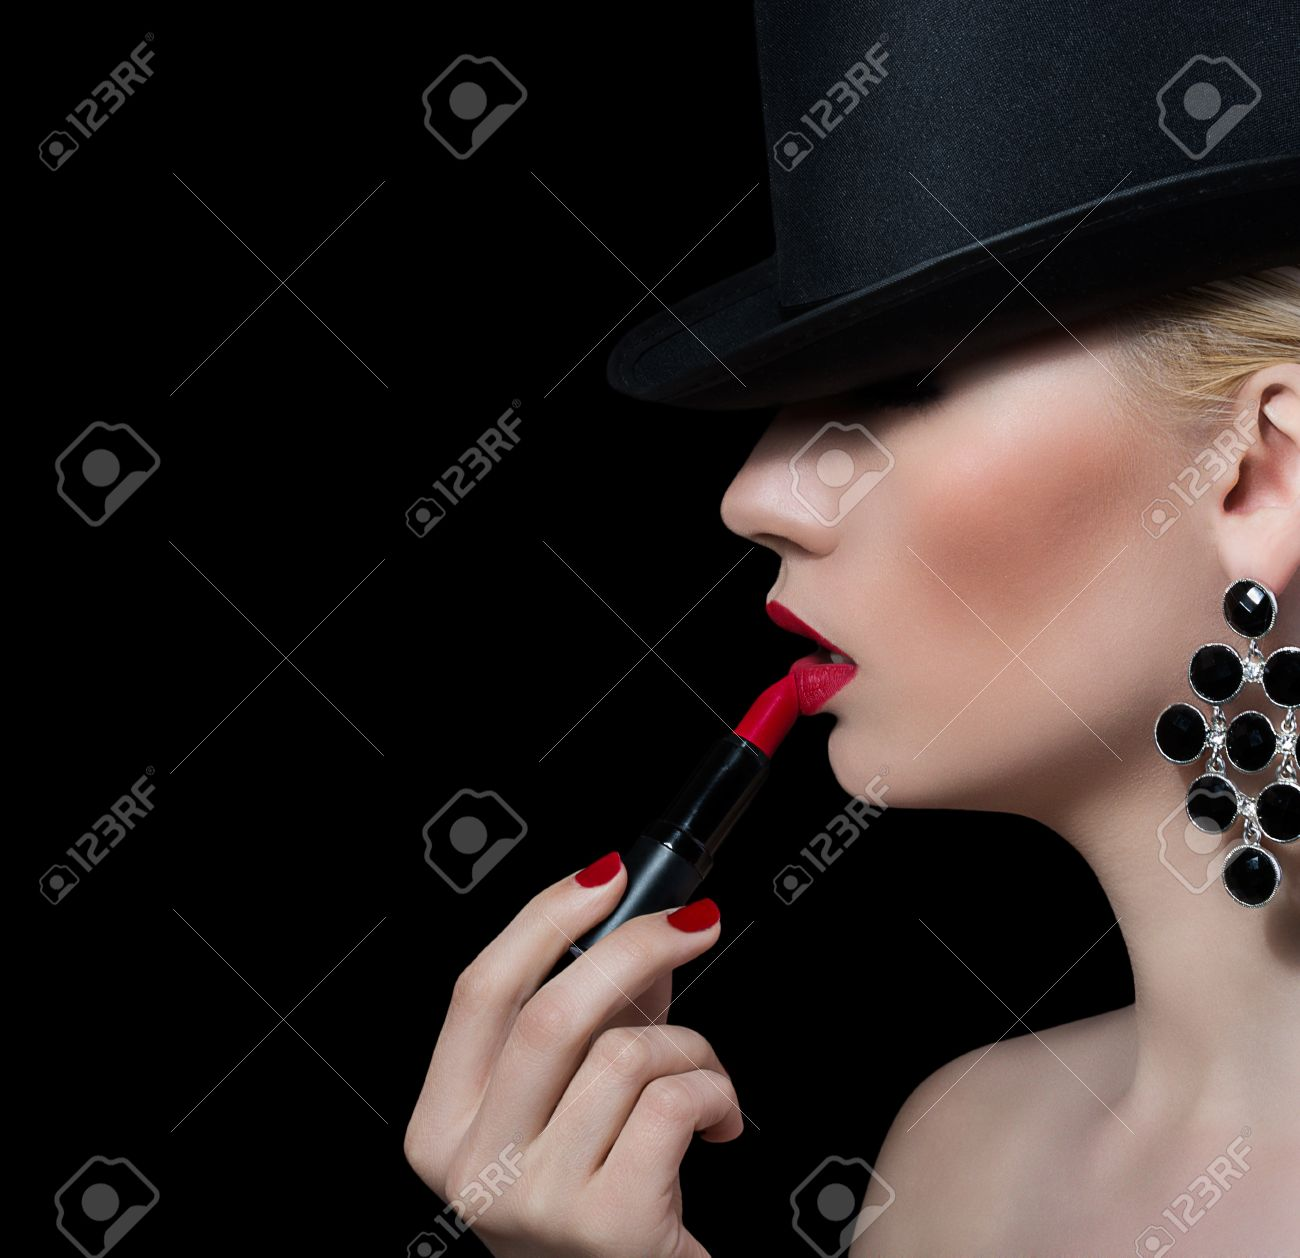 Black dress red lipstick 310